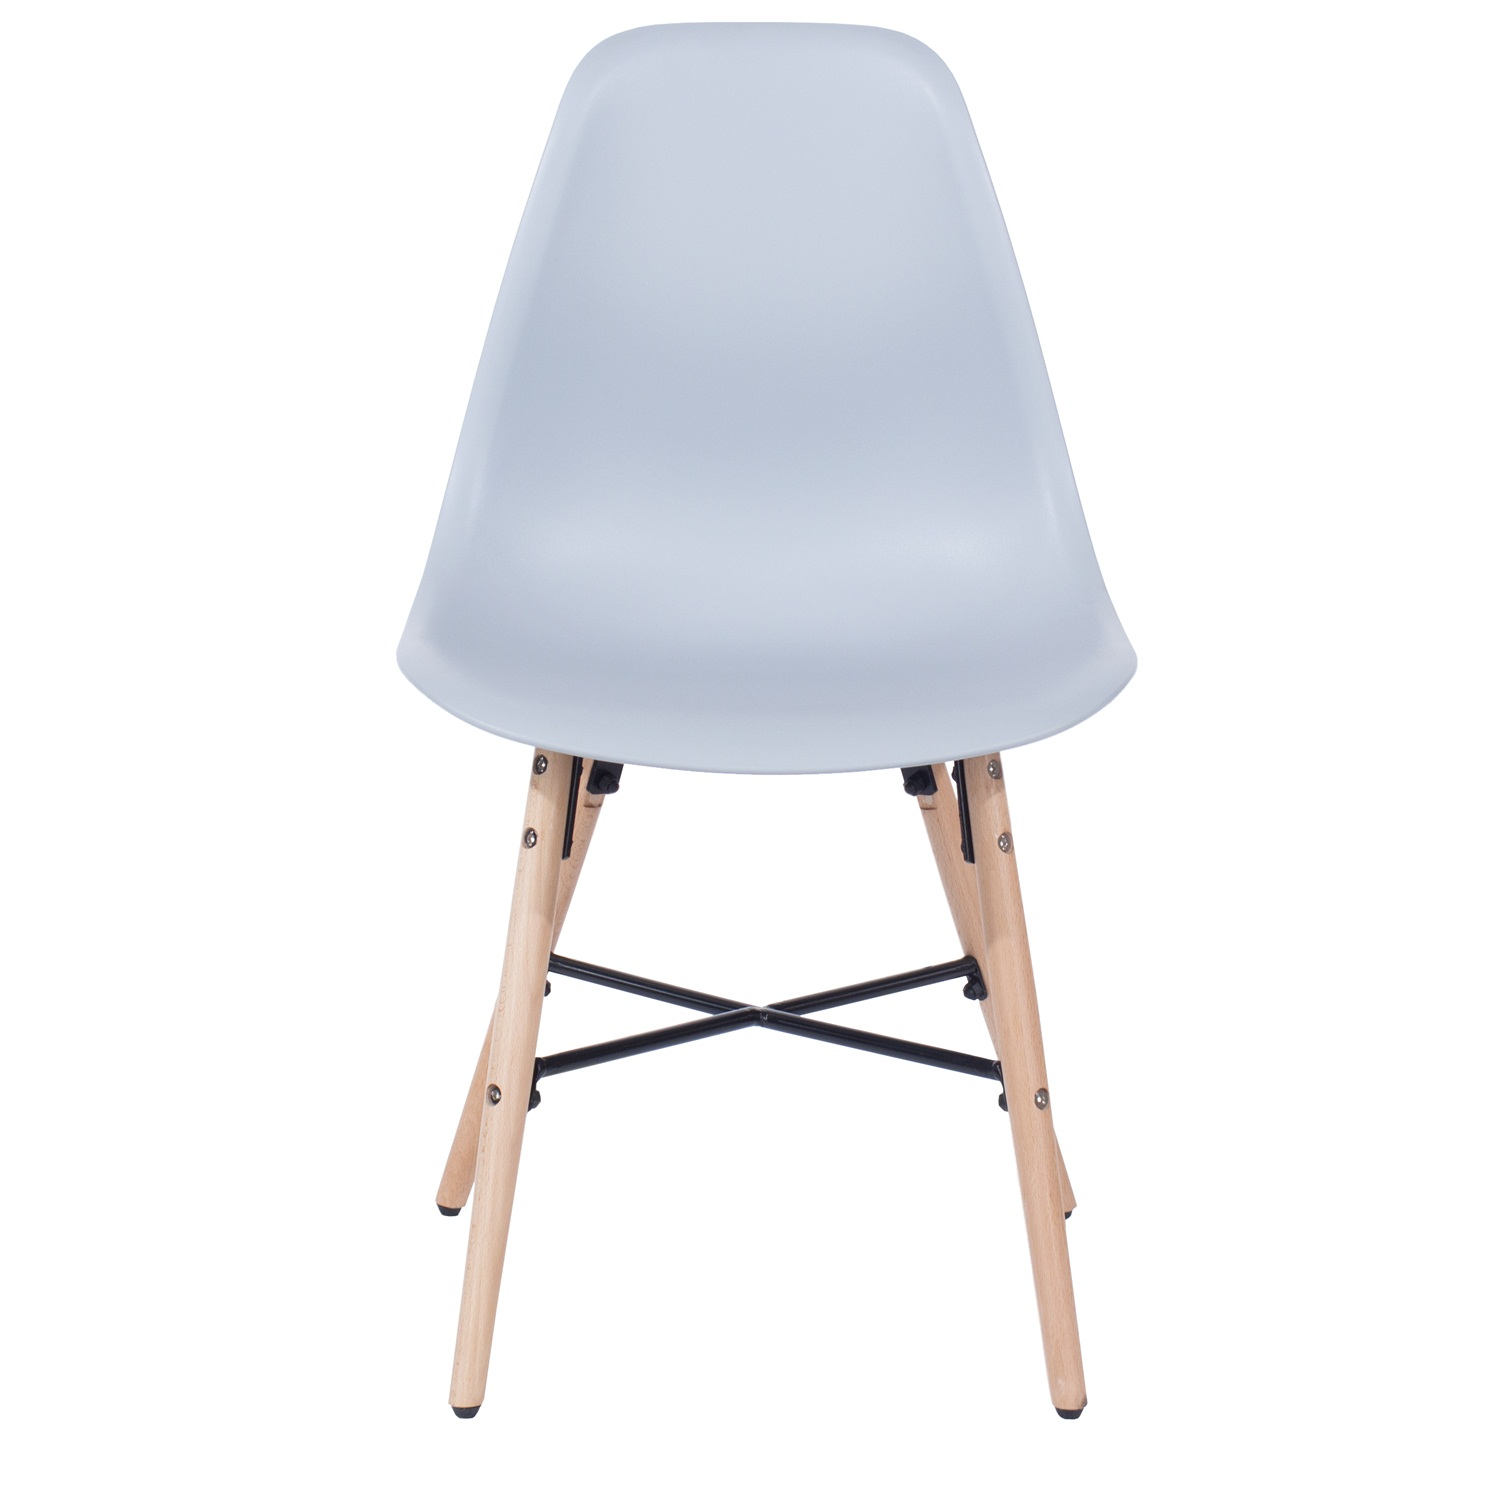 grey plastic chair, wood legs, metal cross rails (order in pairs)